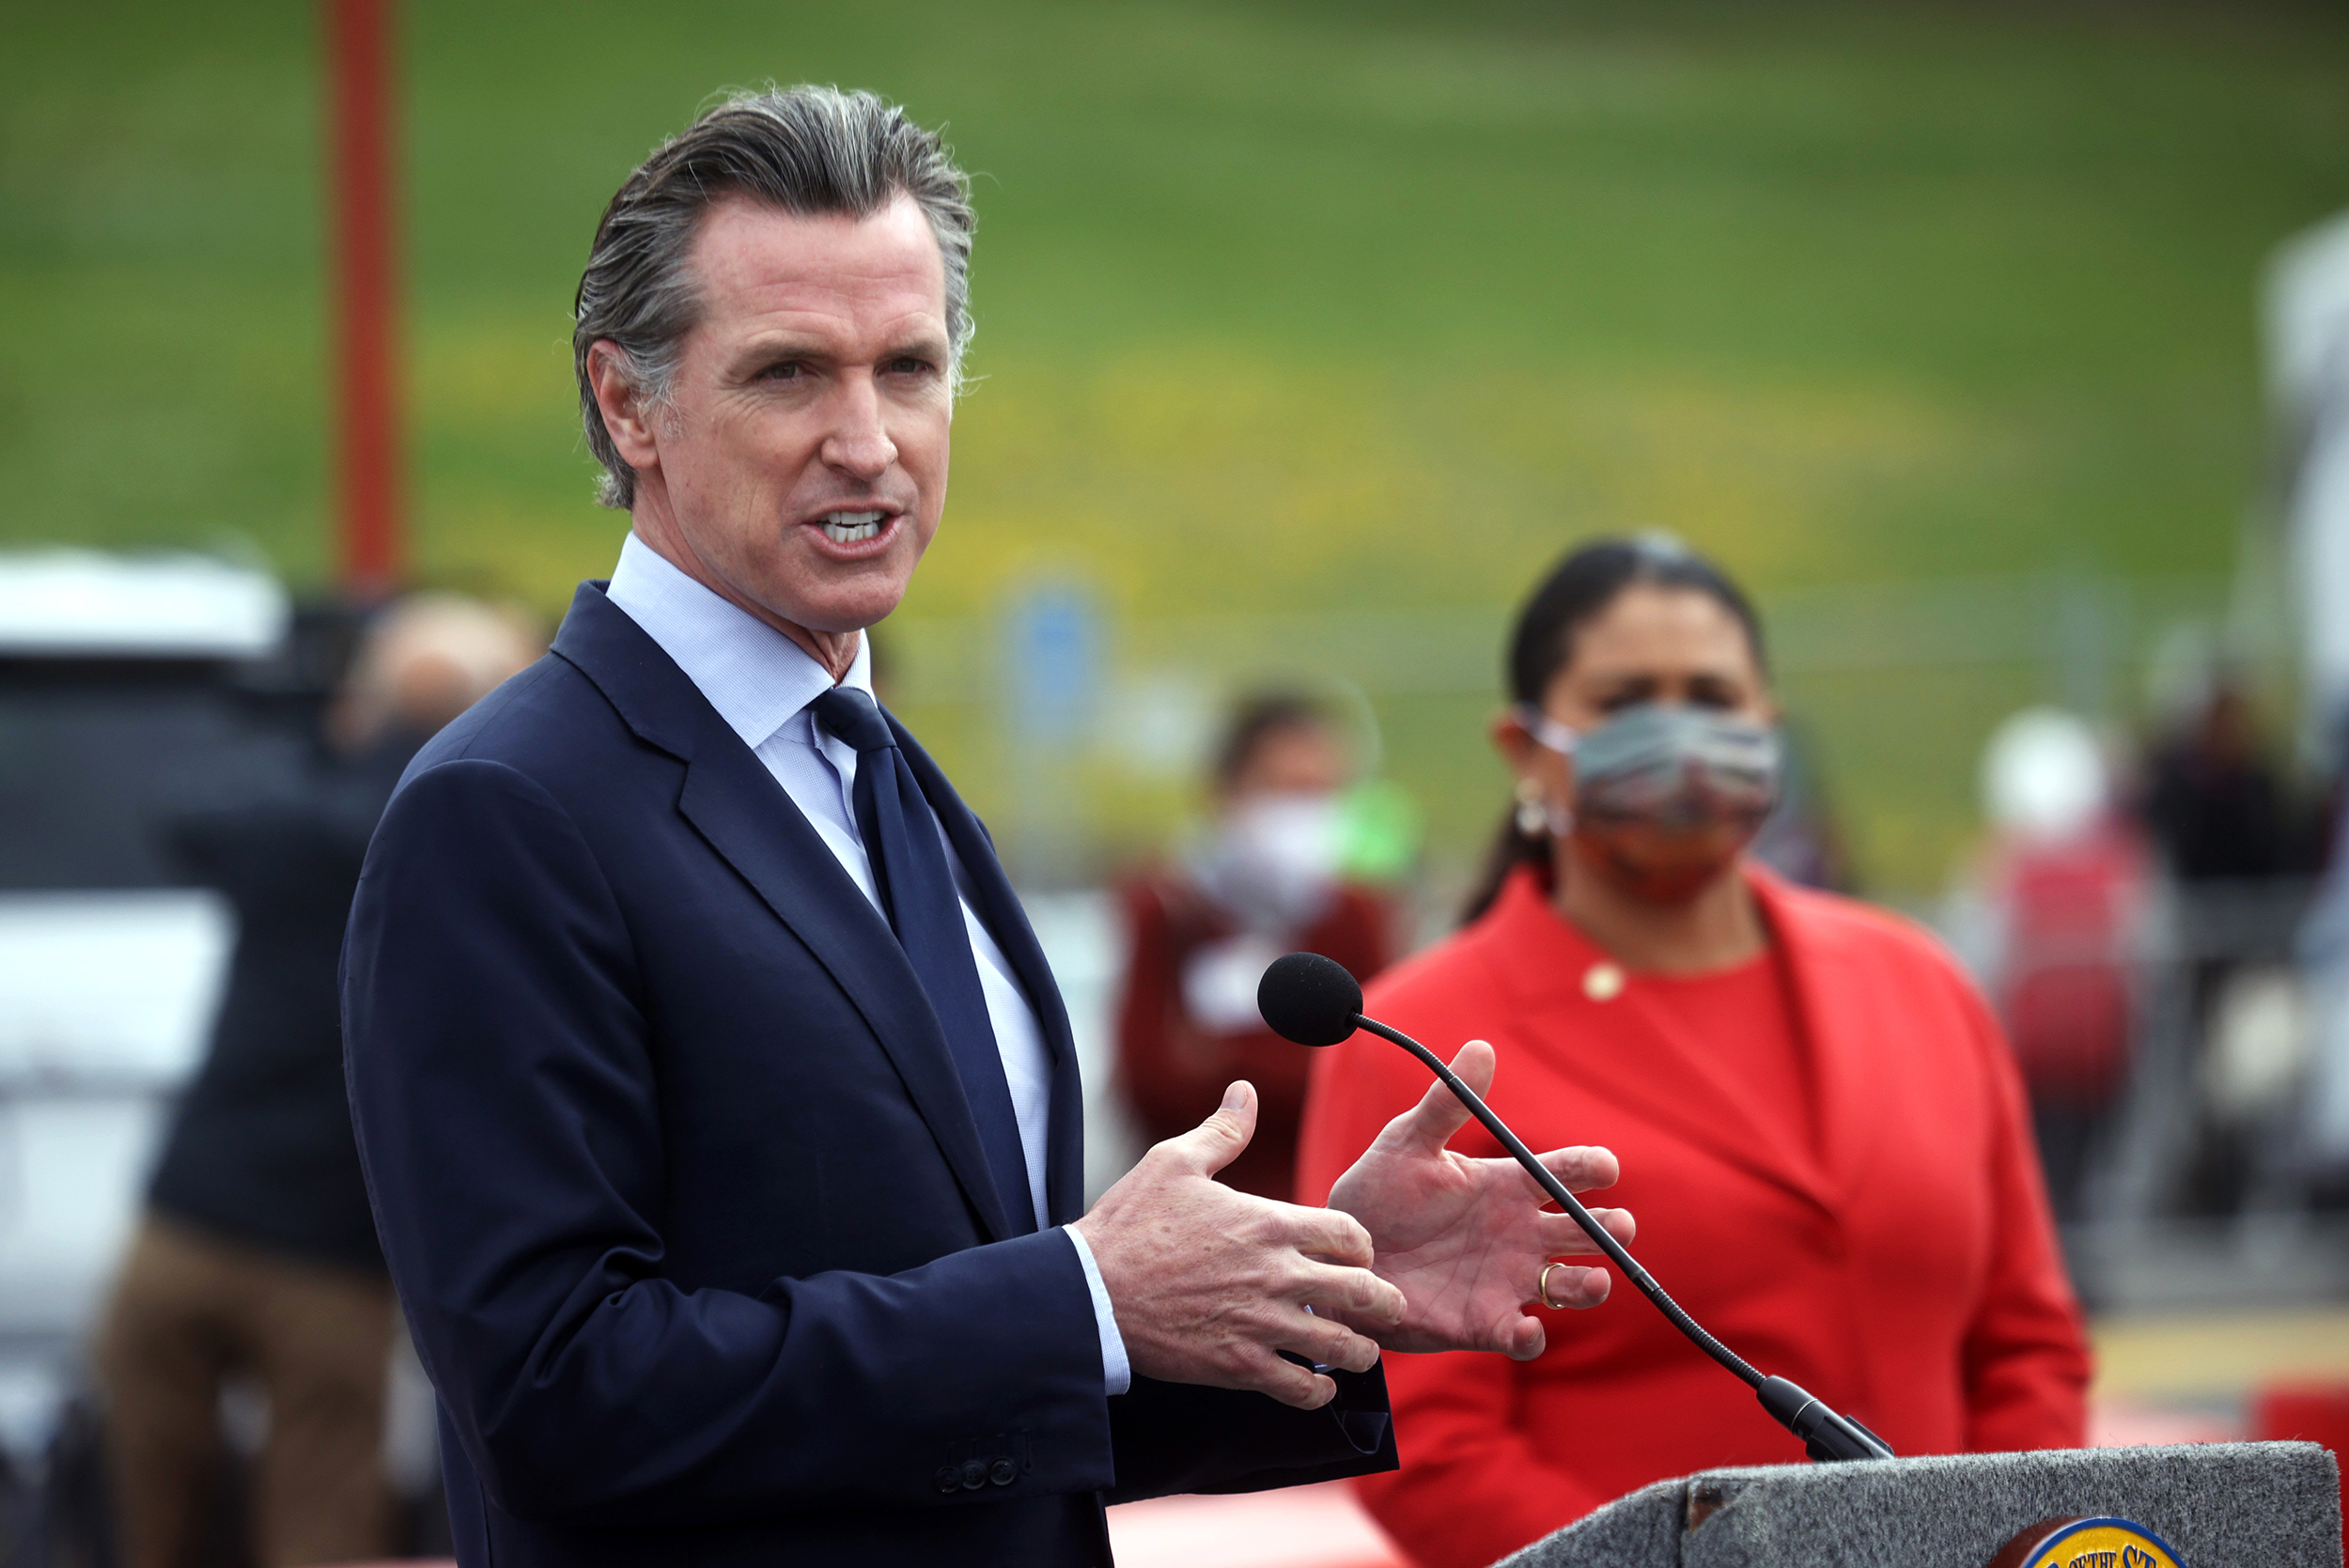 'A-different-time':-Why-the-recall-effort-against-California-Gov.-Newsom-isn't-history-repeating